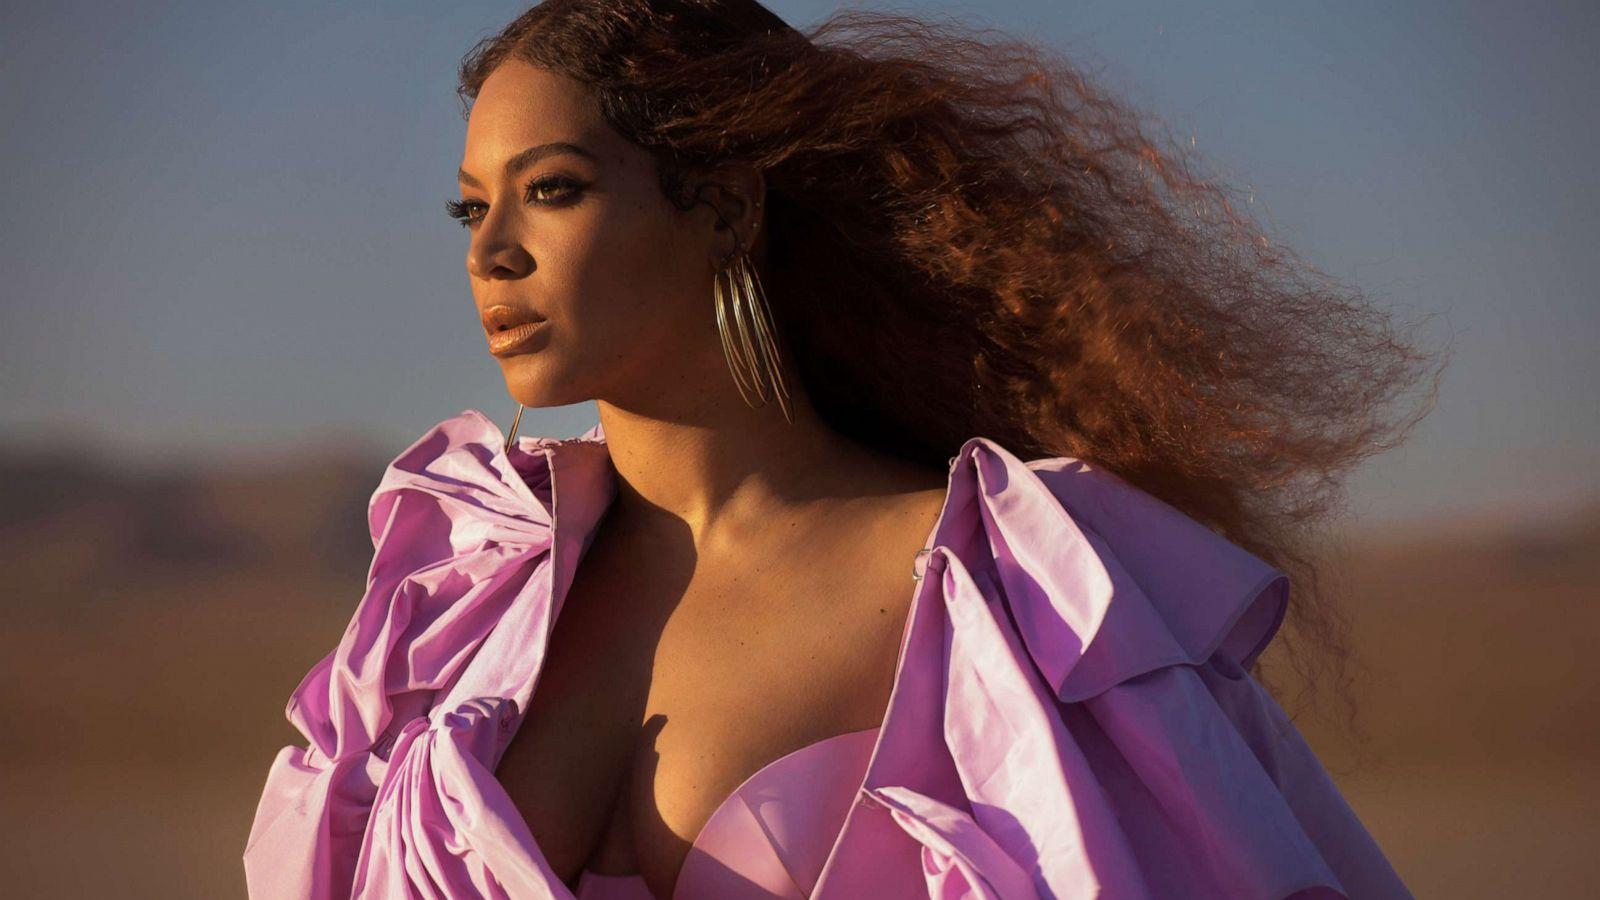 Beyonce Reveals Her Weight Before Starting Plant-Based Diet